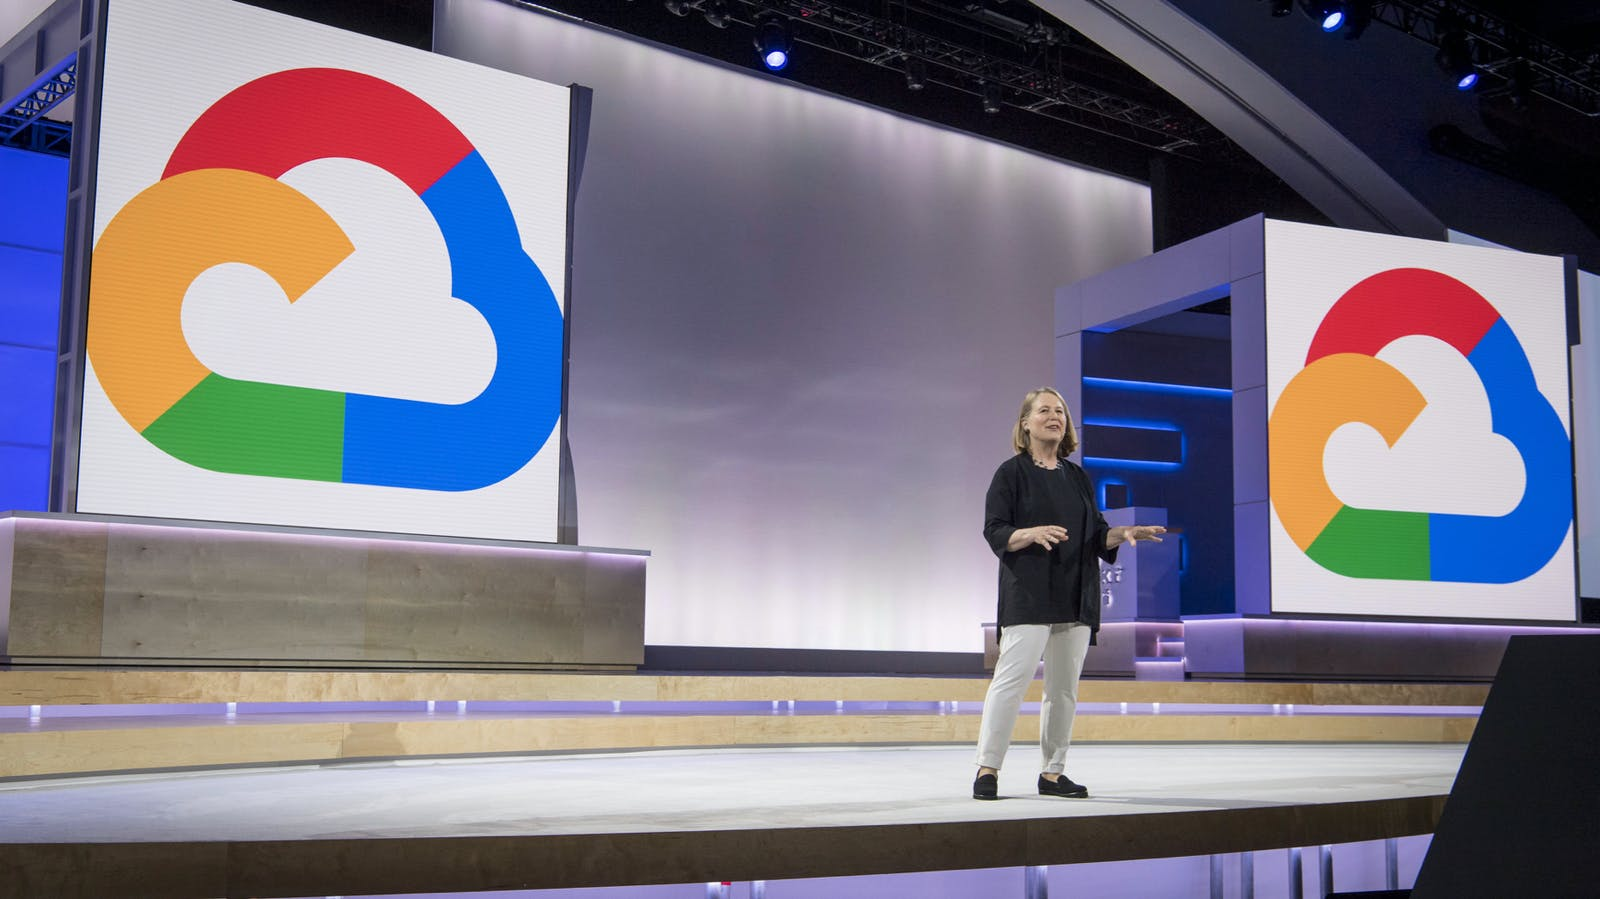 Diane Greene, CEO of Google Cloud, speaking at an event in July. Photo by Bloomberg